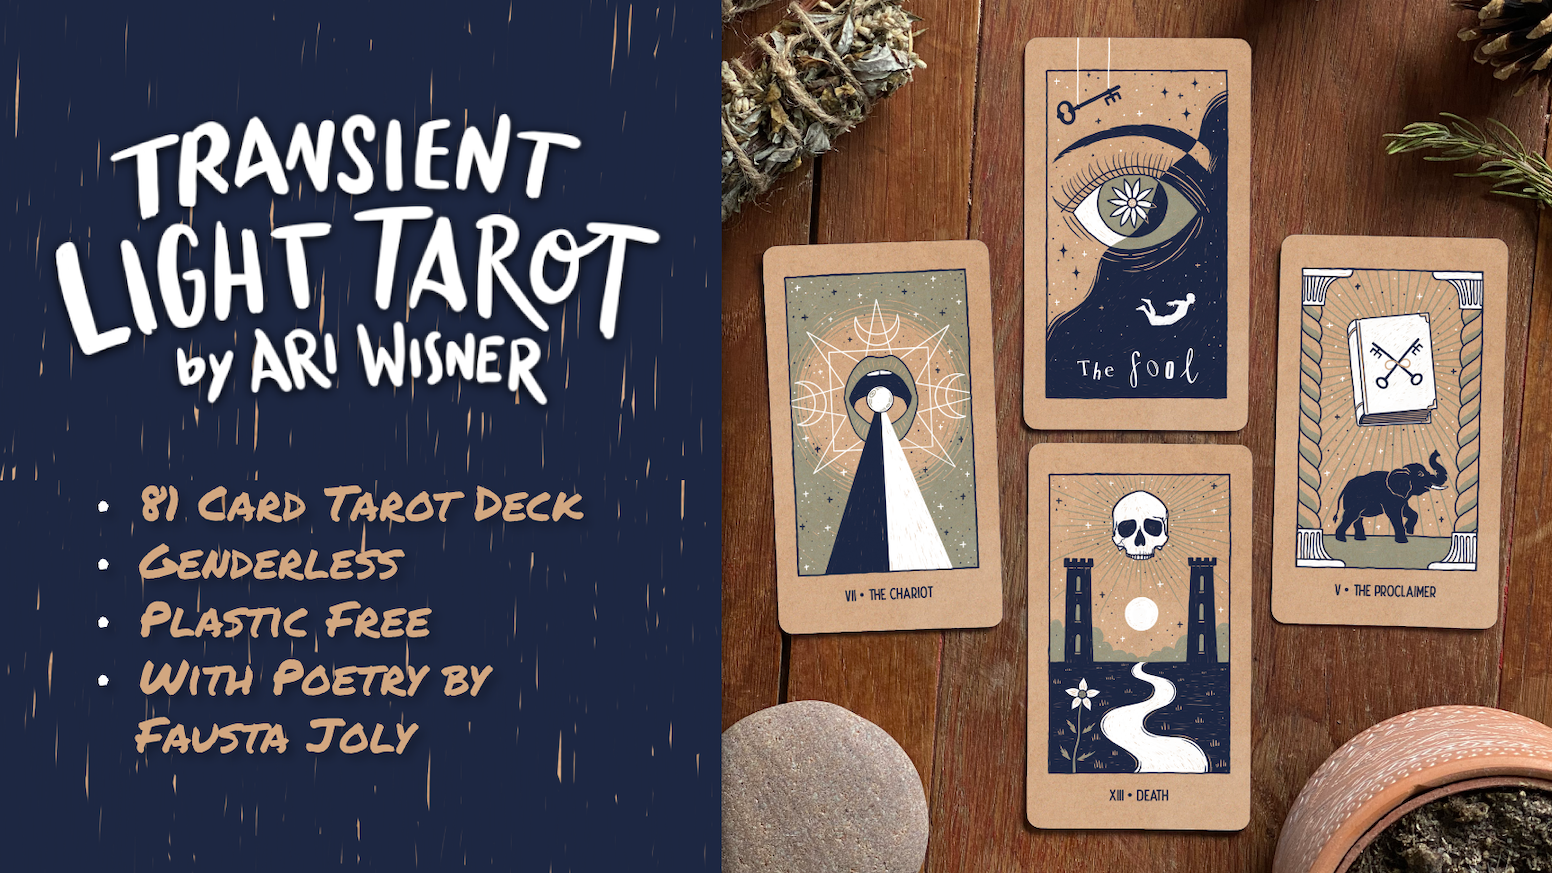 Transient Light Tarot is a plastic-free, genderless indie tarot deck illustrated by the creator of the Trinity Tarot, Ari Wisner @ari_wisner